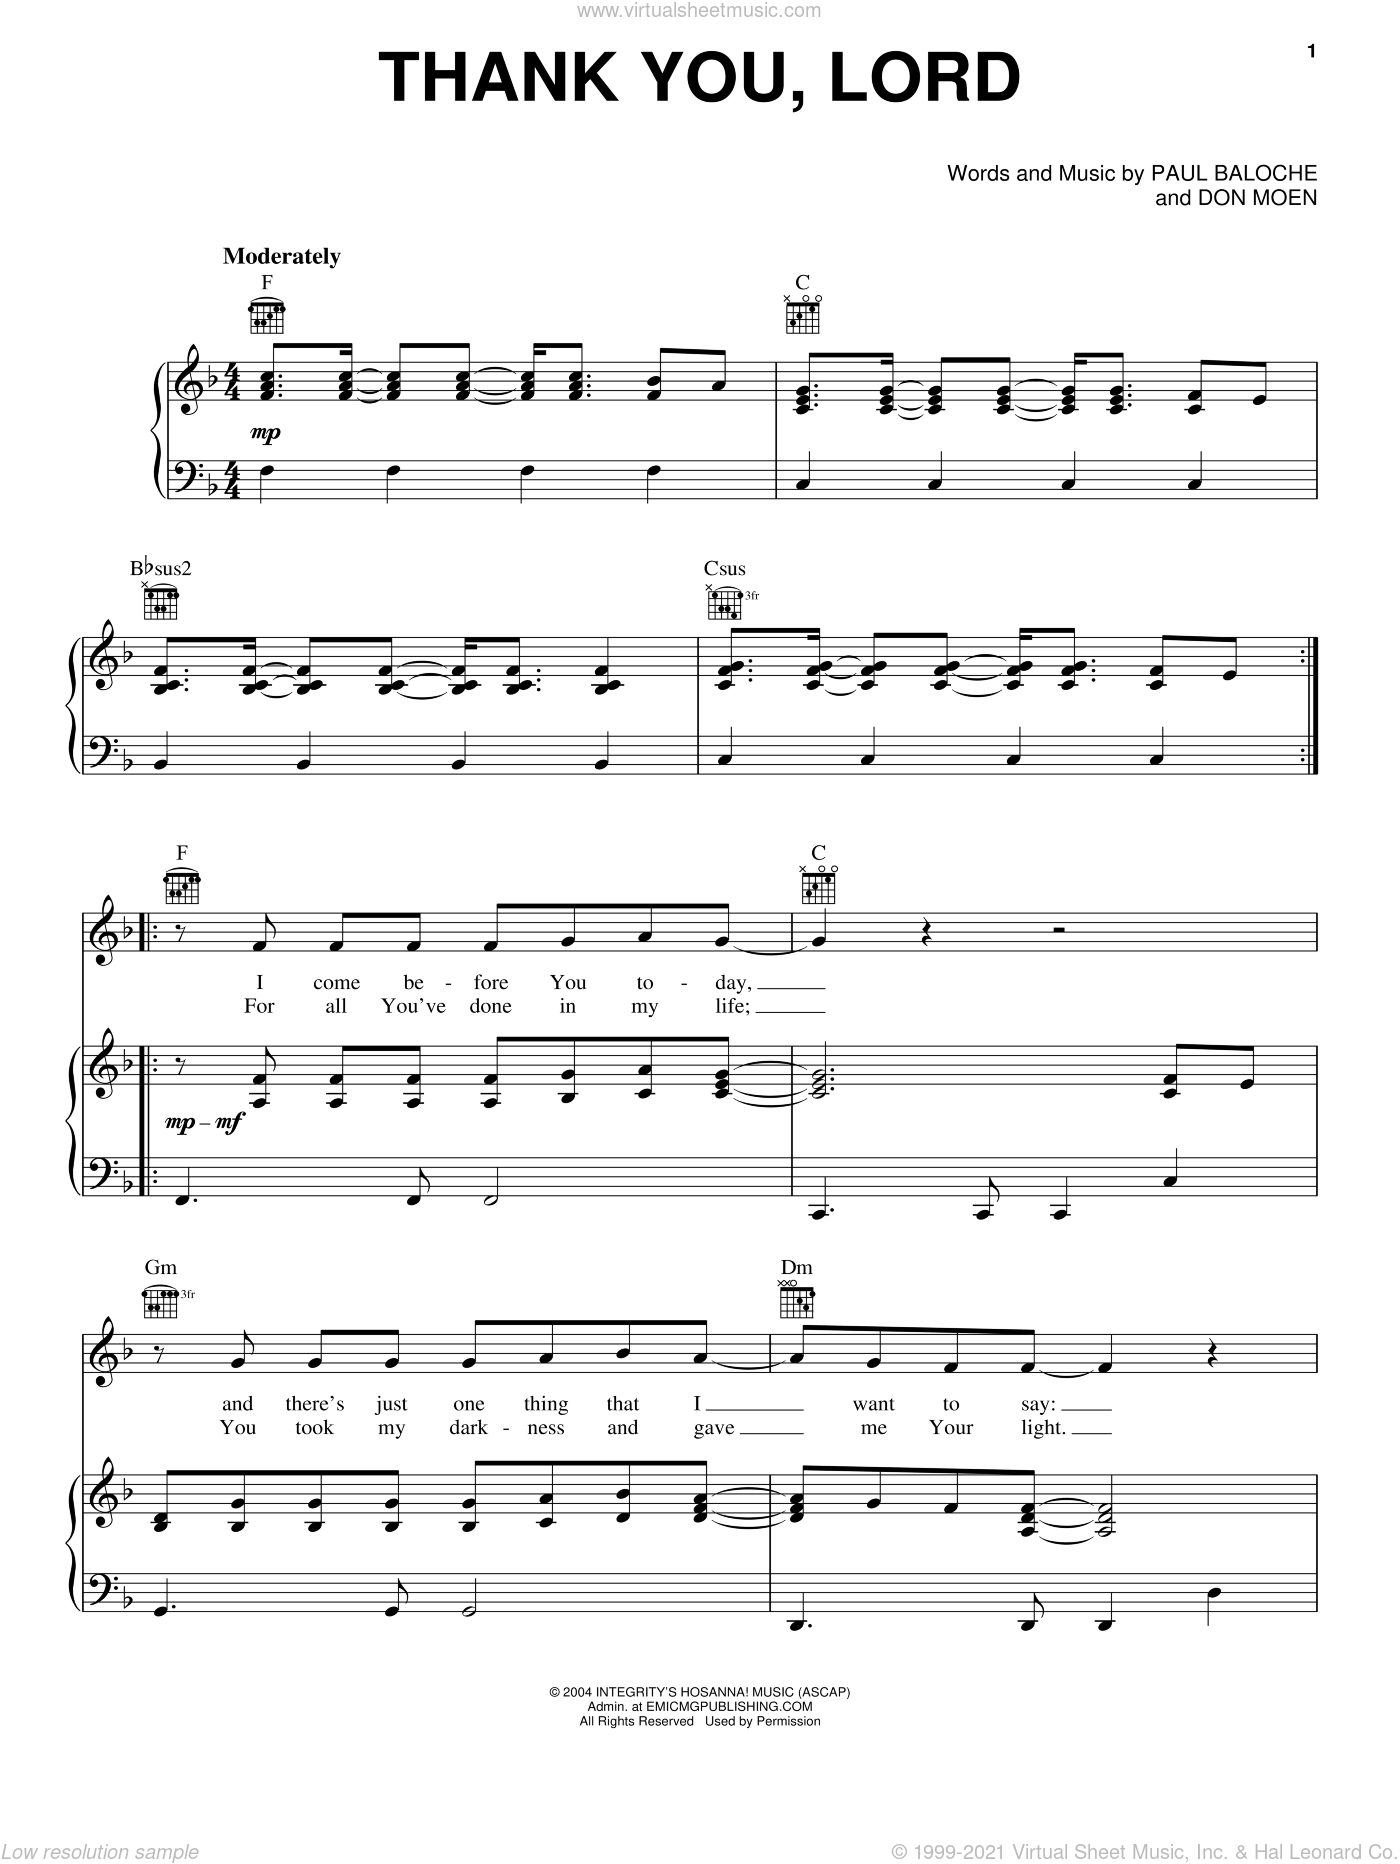 Thank You, Lord sheet music for voice, piano or guitar by Paul Baloche and Don Moen. Score Image Preview.